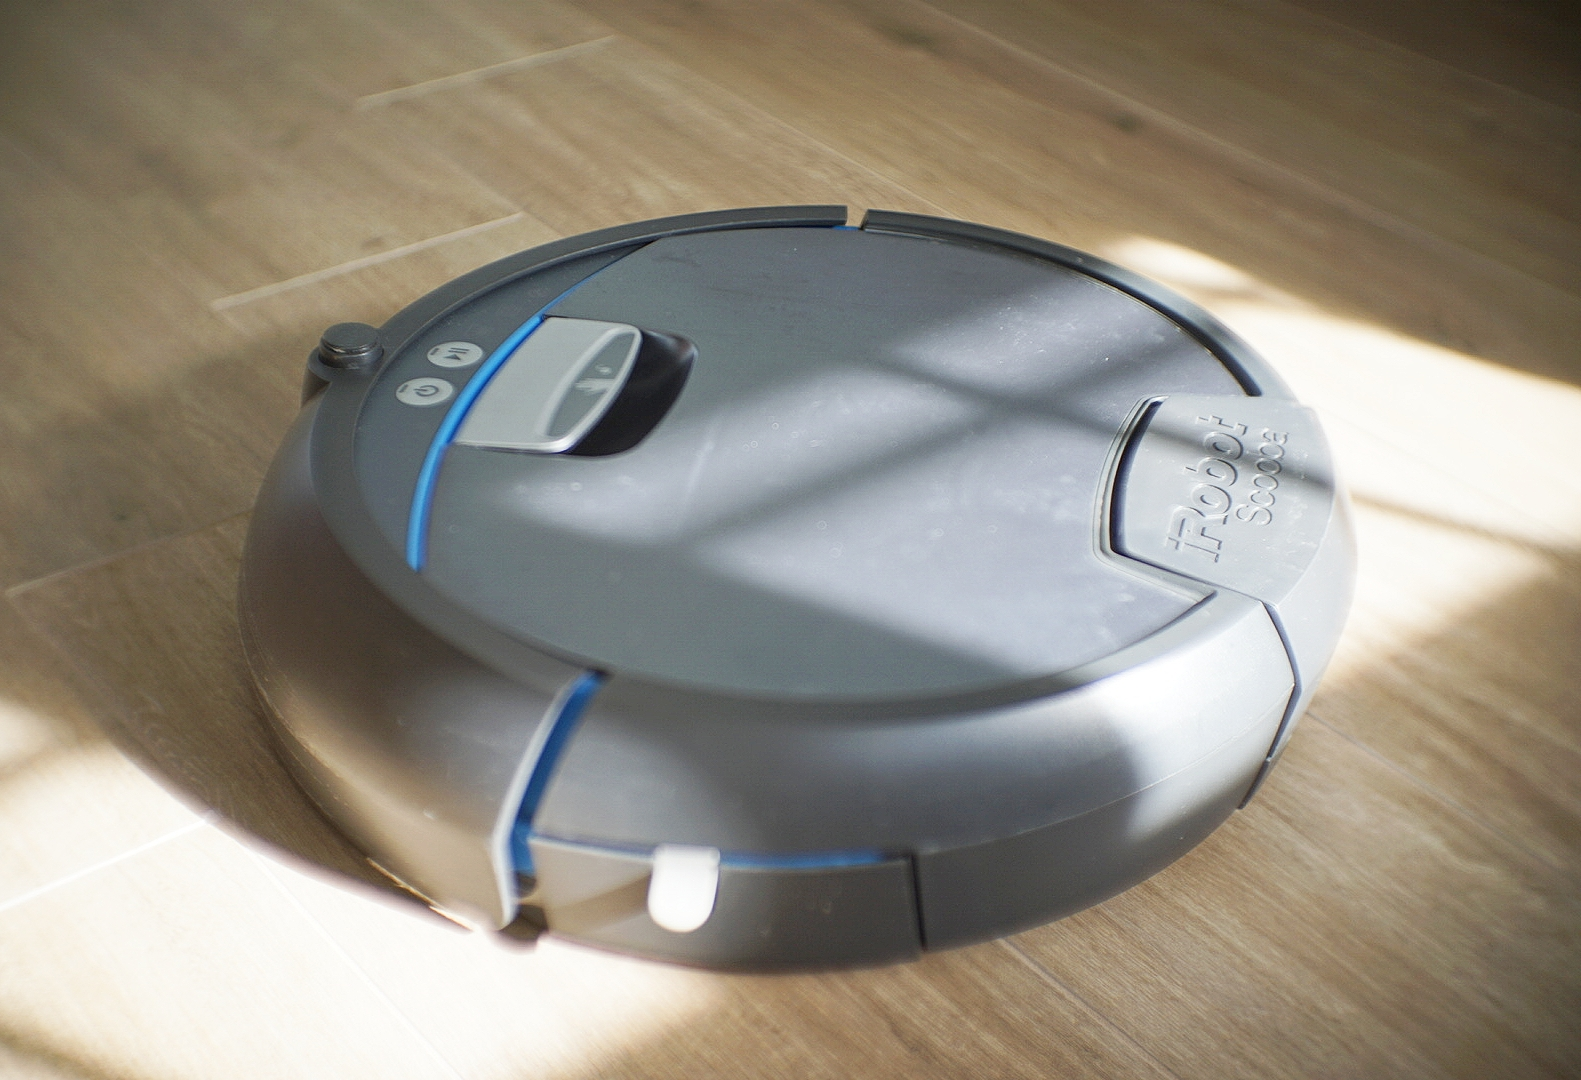 The Scooba 390 is effective and keeping the floors clean.